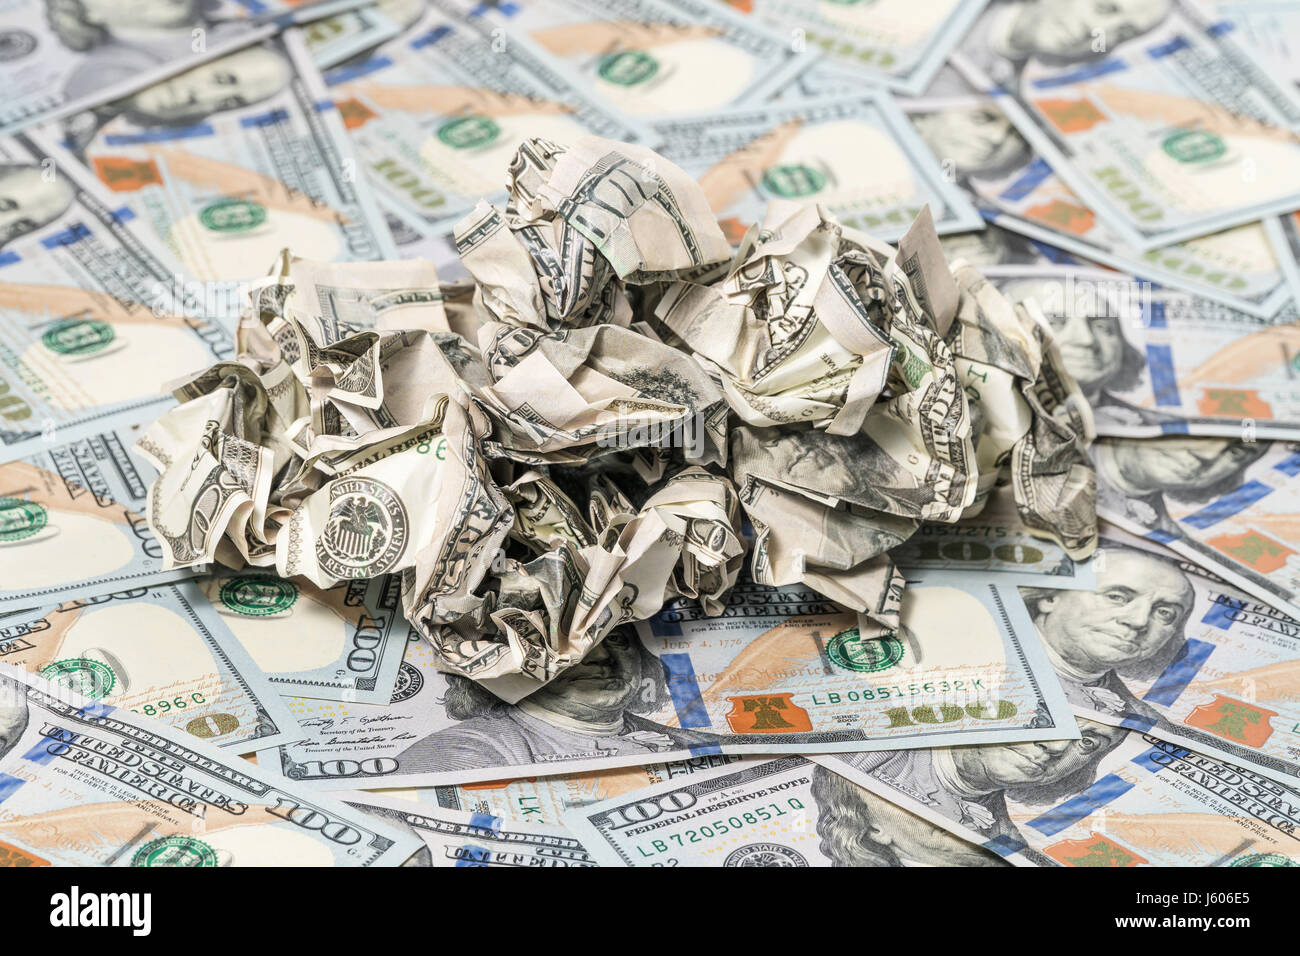 Pile of crumpled money on a background of hundred-dollar bills Stock Photo